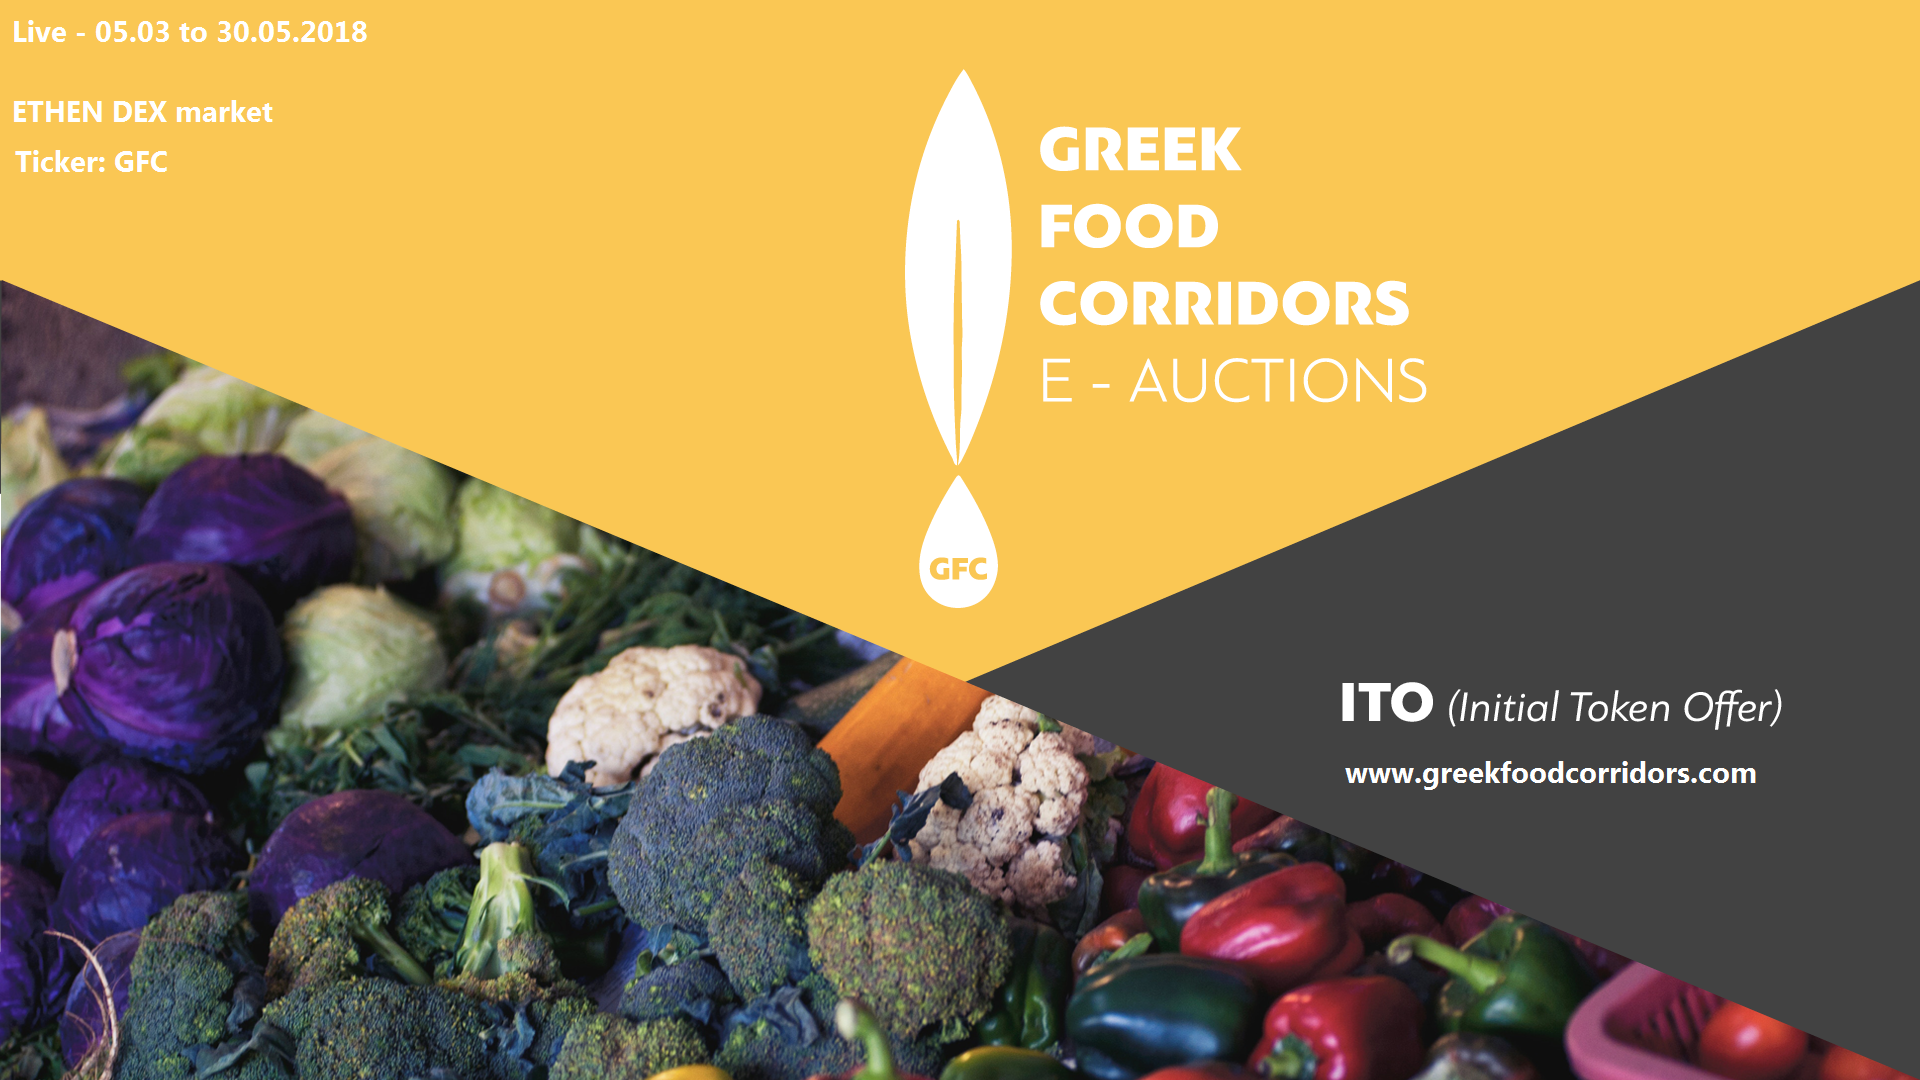 Greek Food Corridors and its Mission E-Auctioning the Olive Oil and